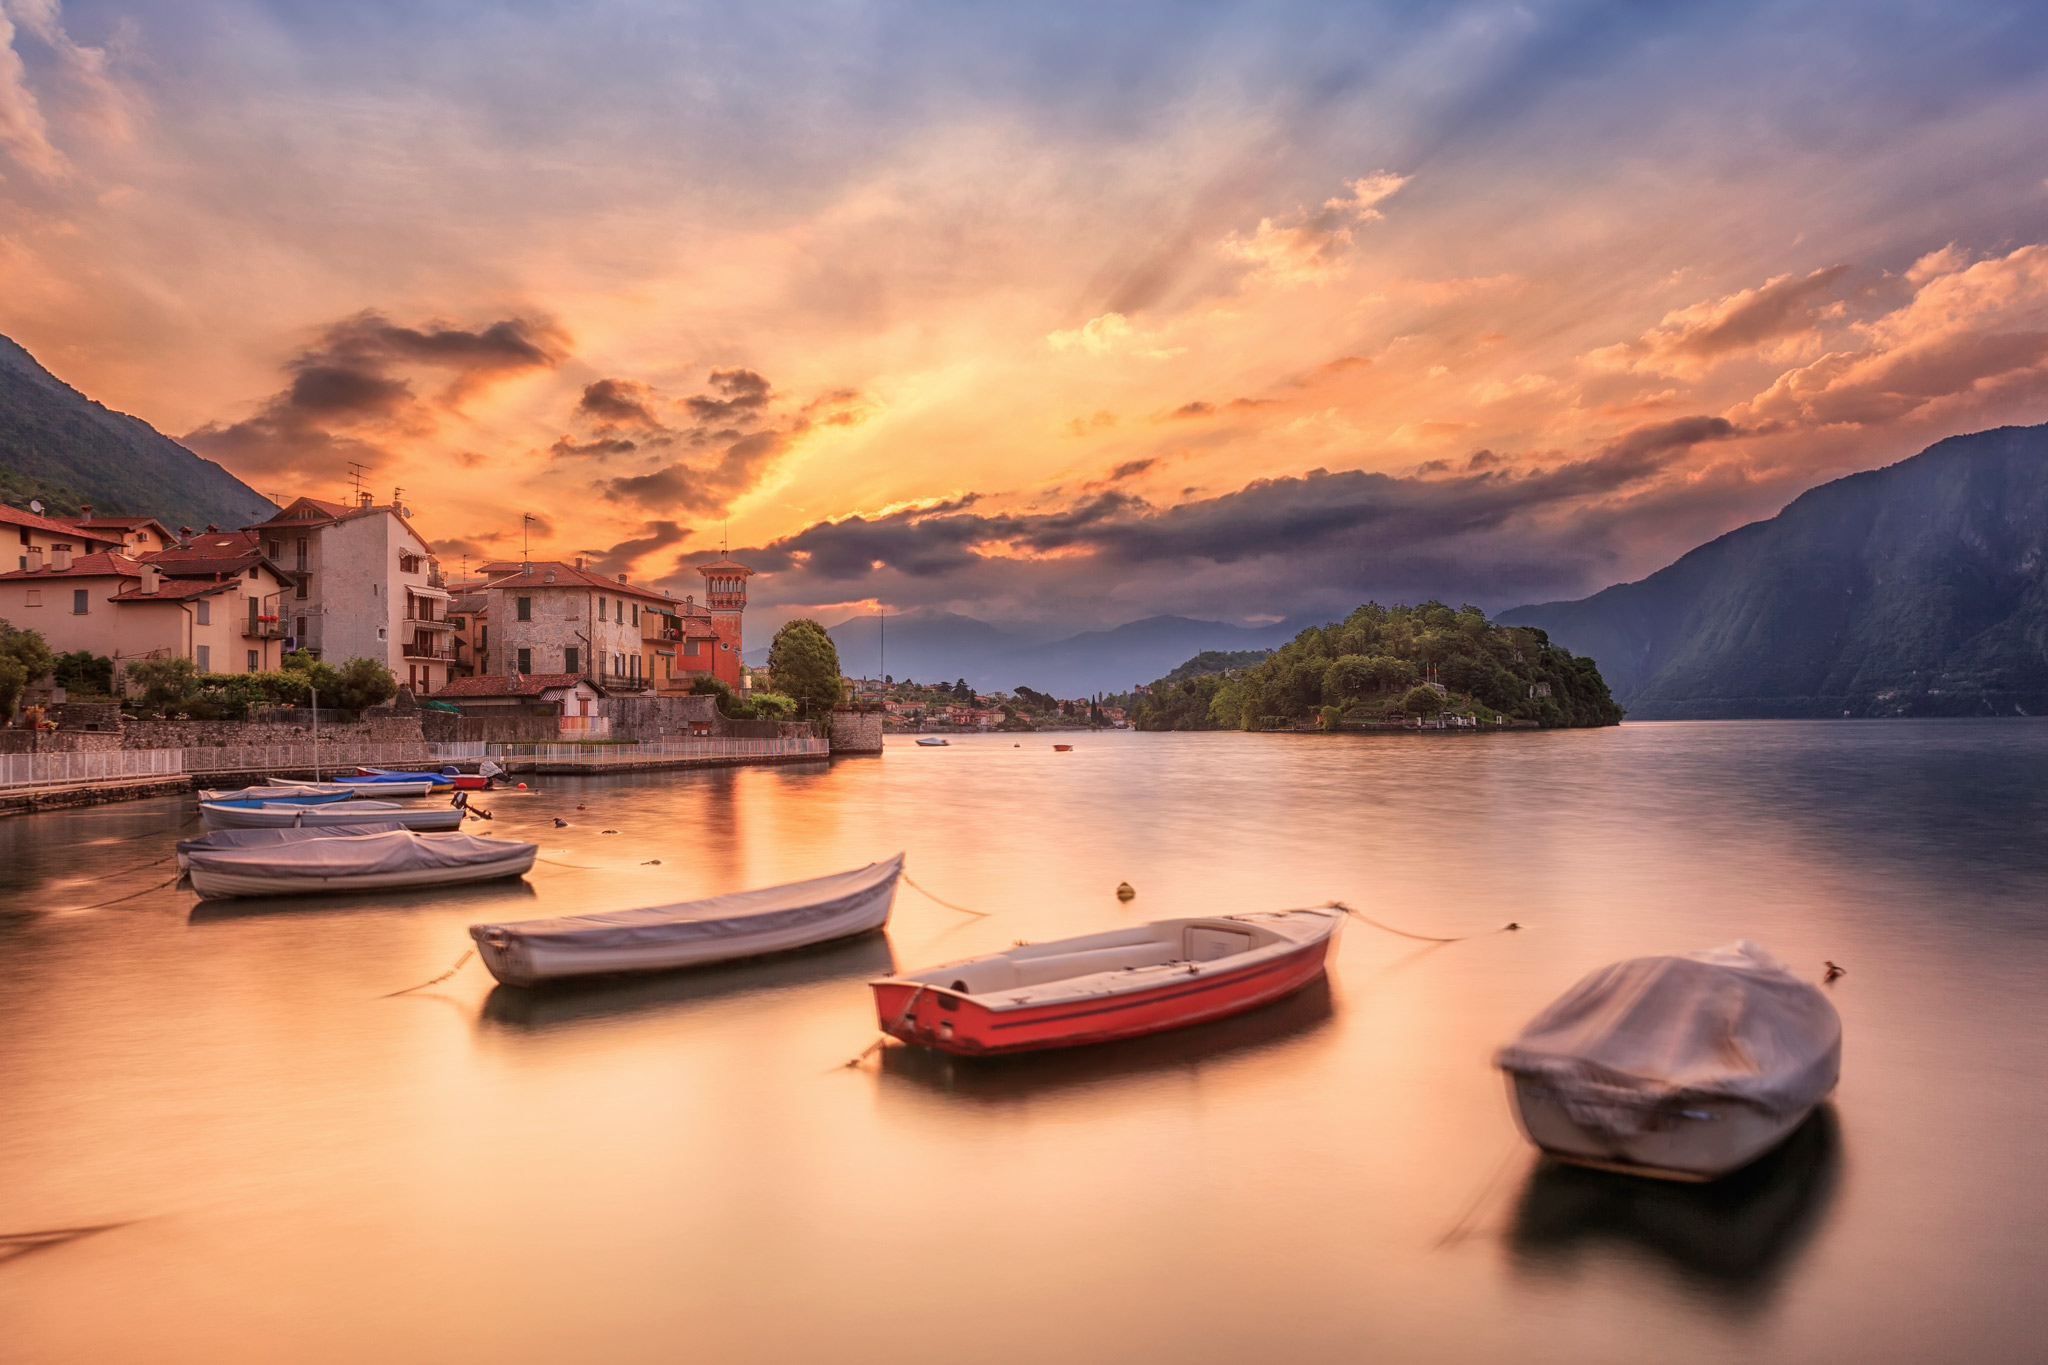 The lake soul, Italy